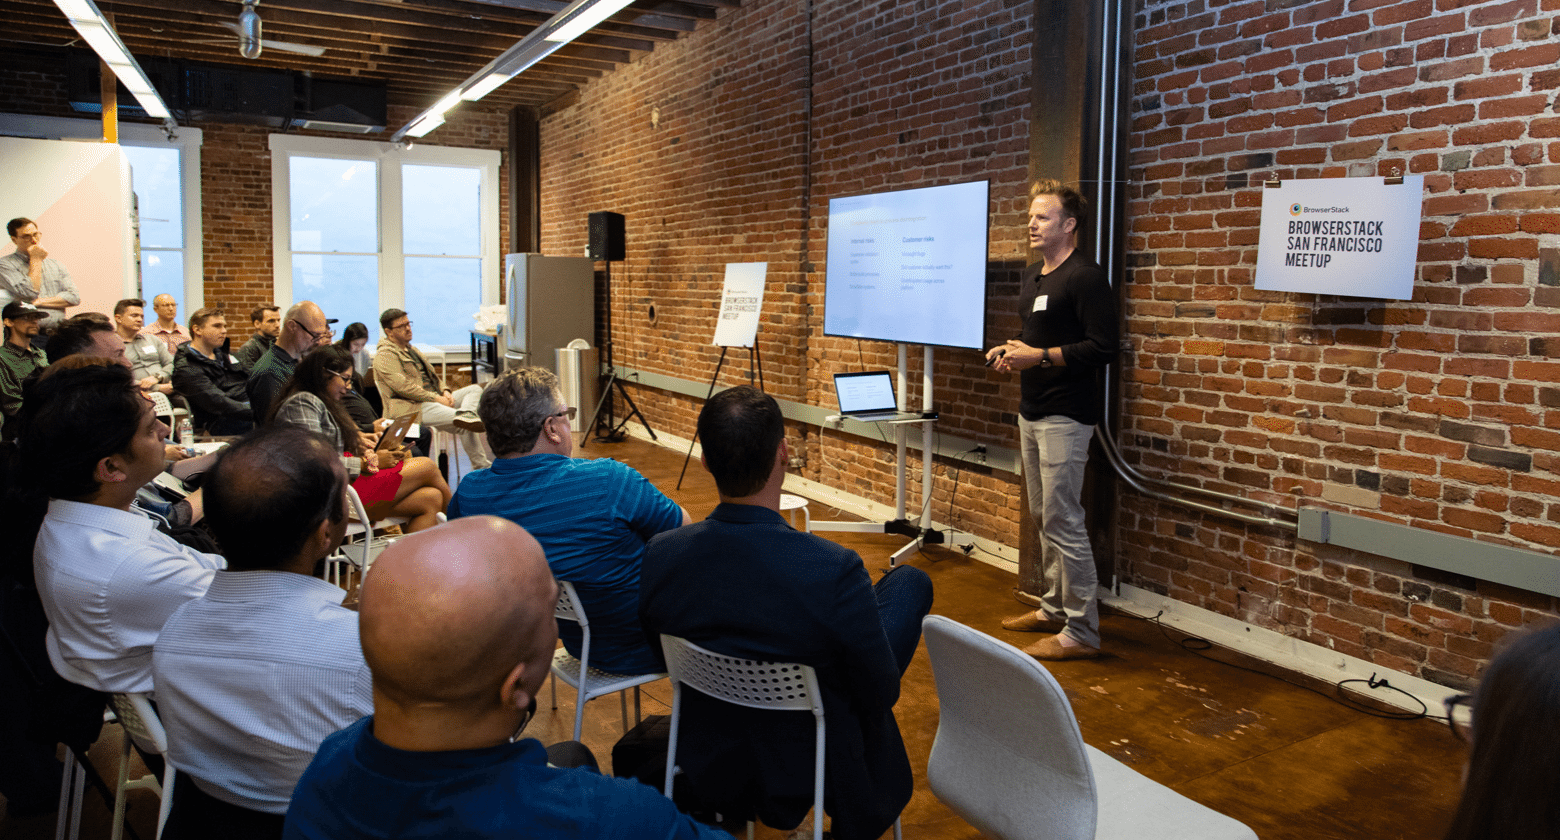 BrowserStack-San-Francisco-Meetup-4